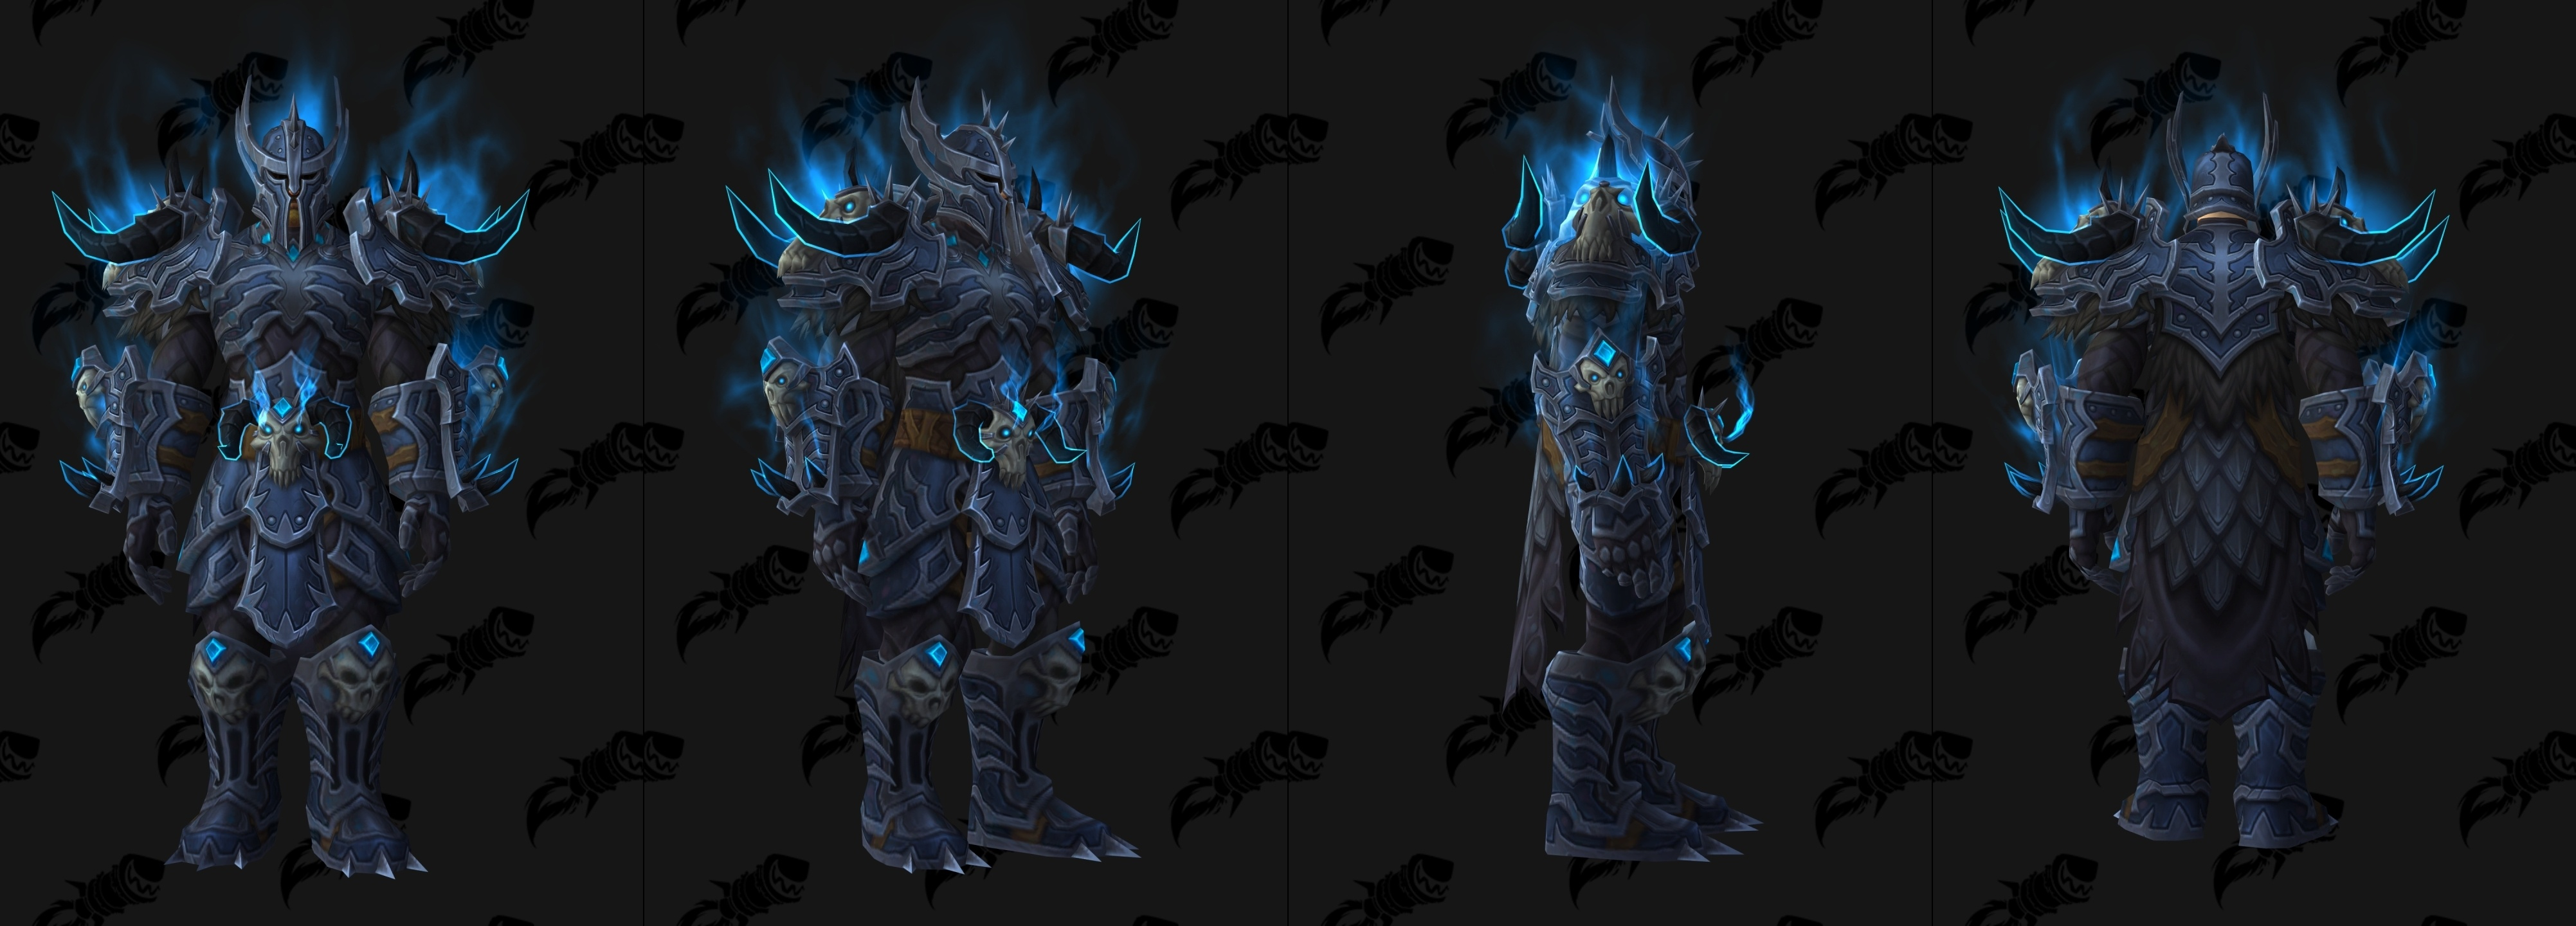 Images and Transmog Sets & Death Knight Tier 21 - Dreadwake Armor - Wowhead News